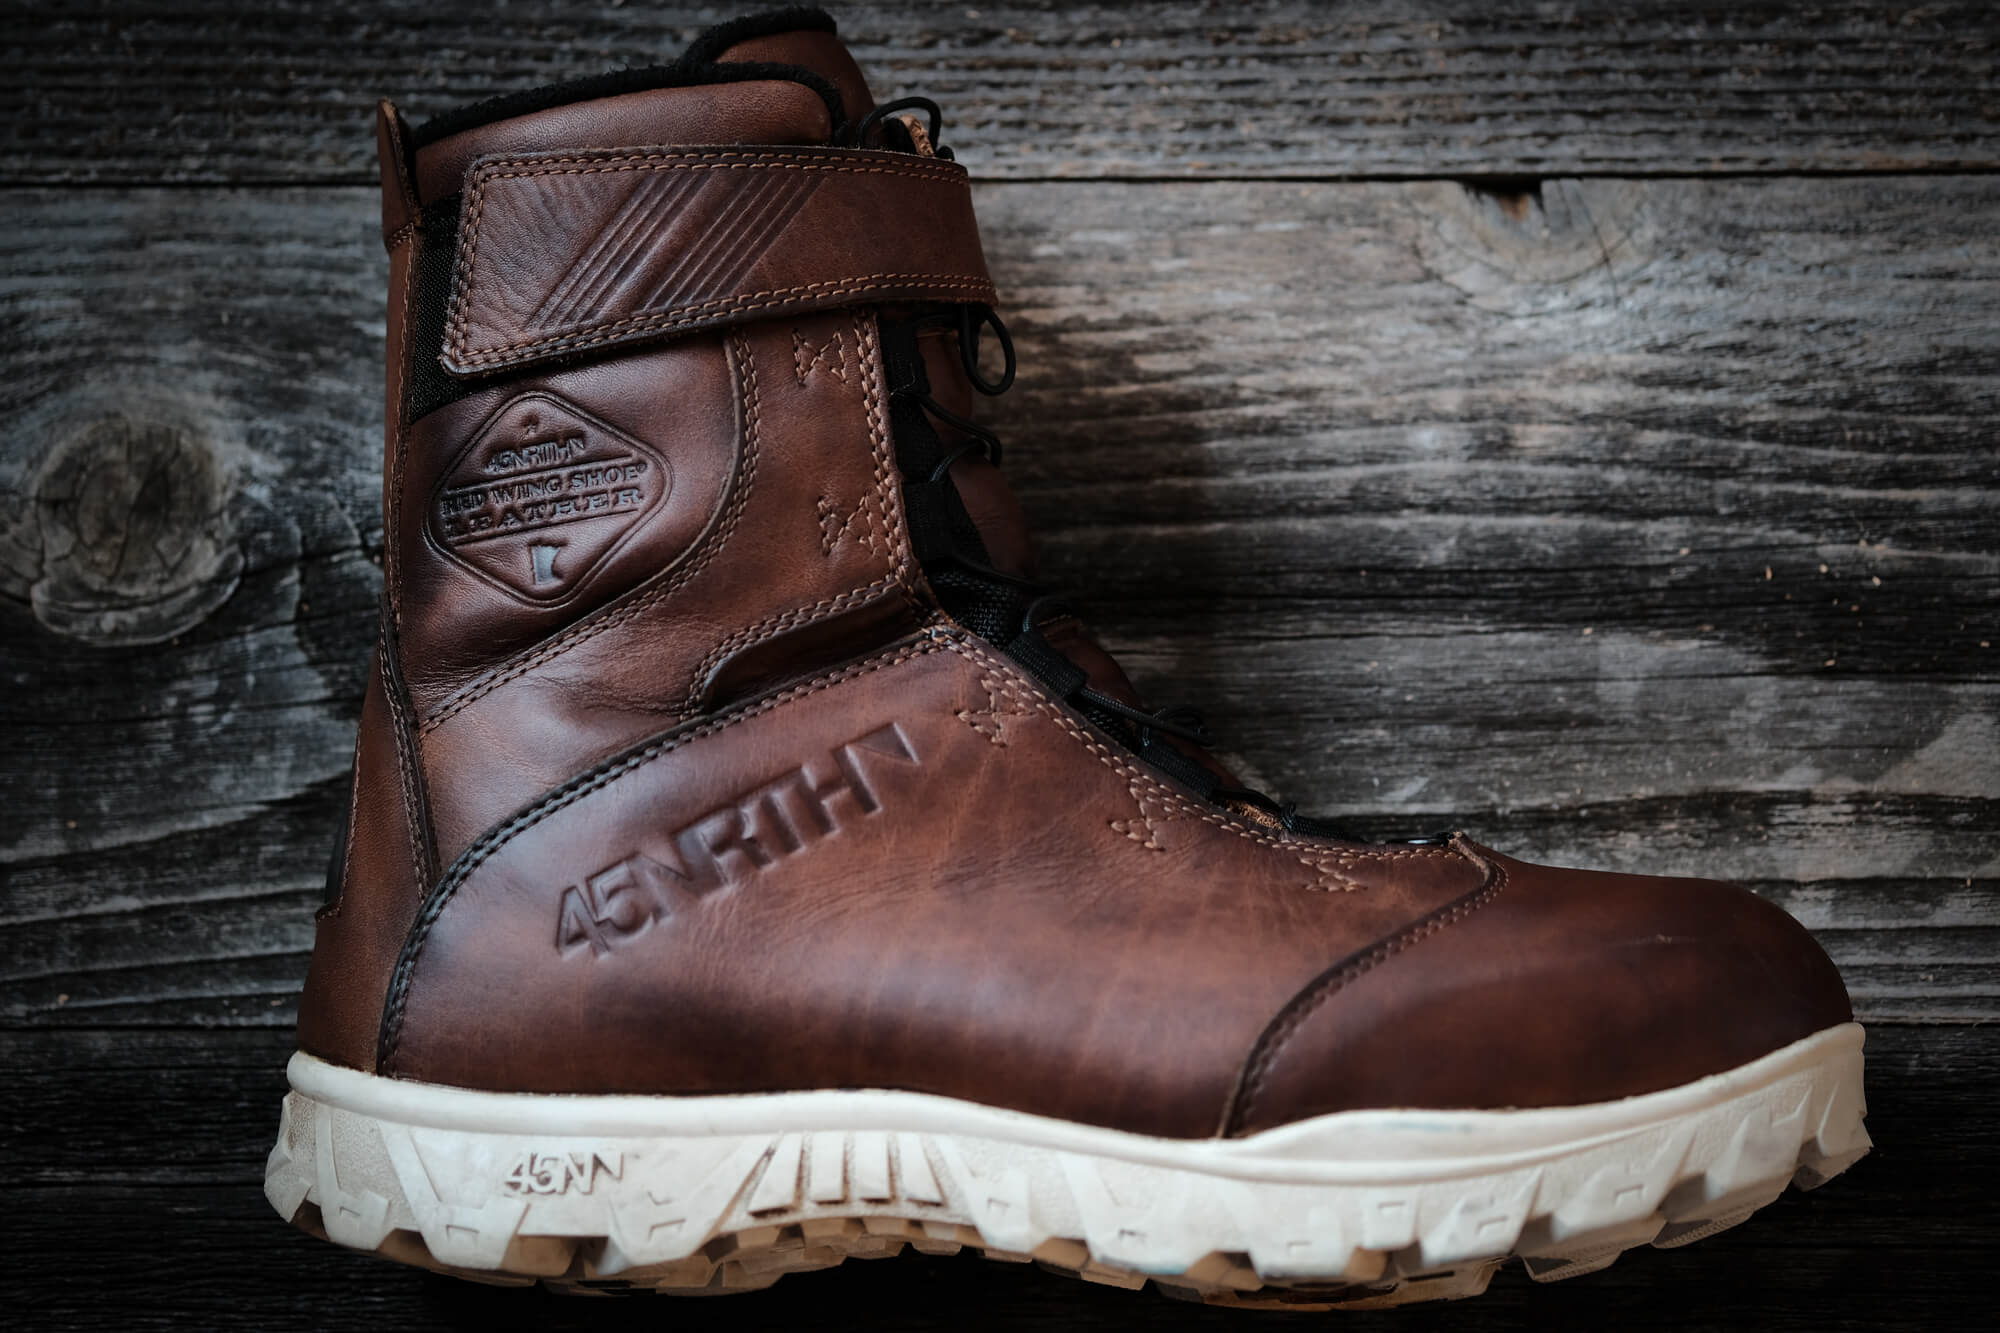 45NRTH Red Wing Wölvhammer cycling boot with leather darkened from the Naturseal